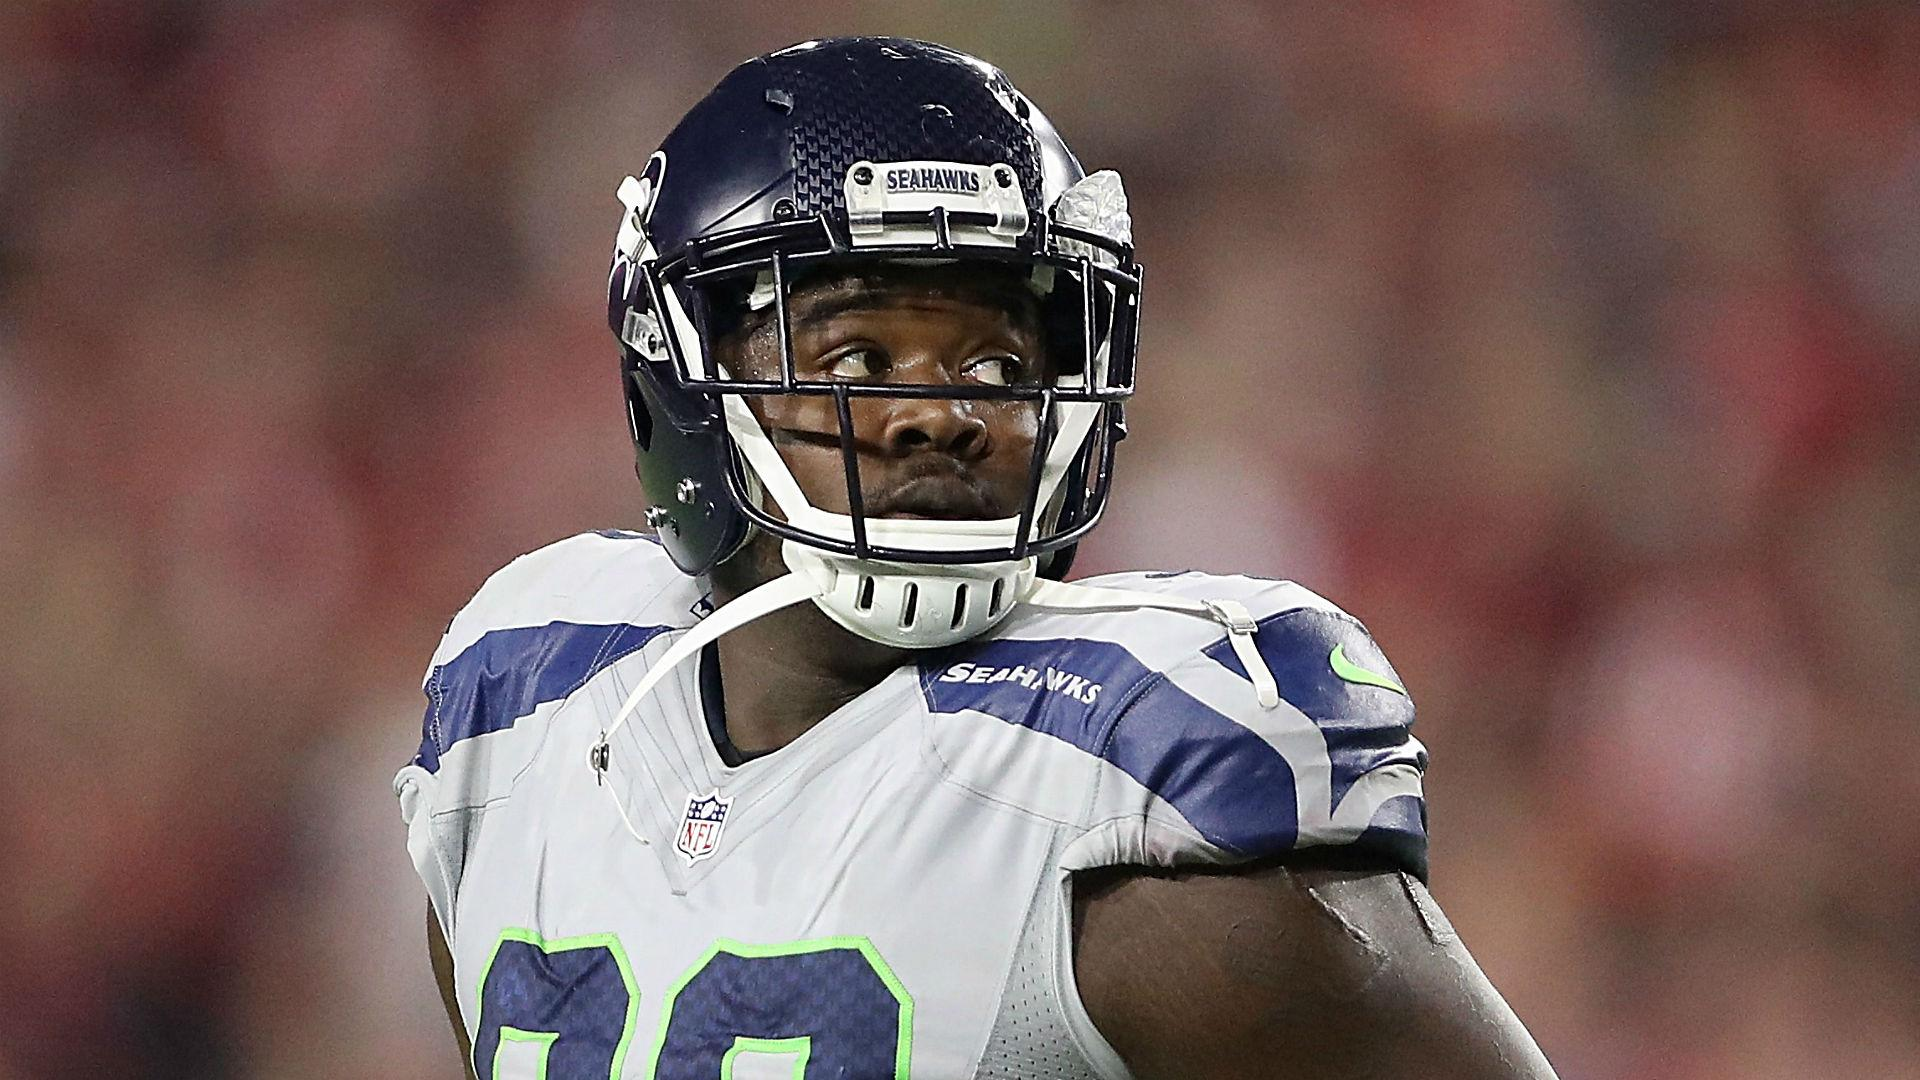 Seahawks' Jarran Reed suspended for violating NFL personal conduct policy